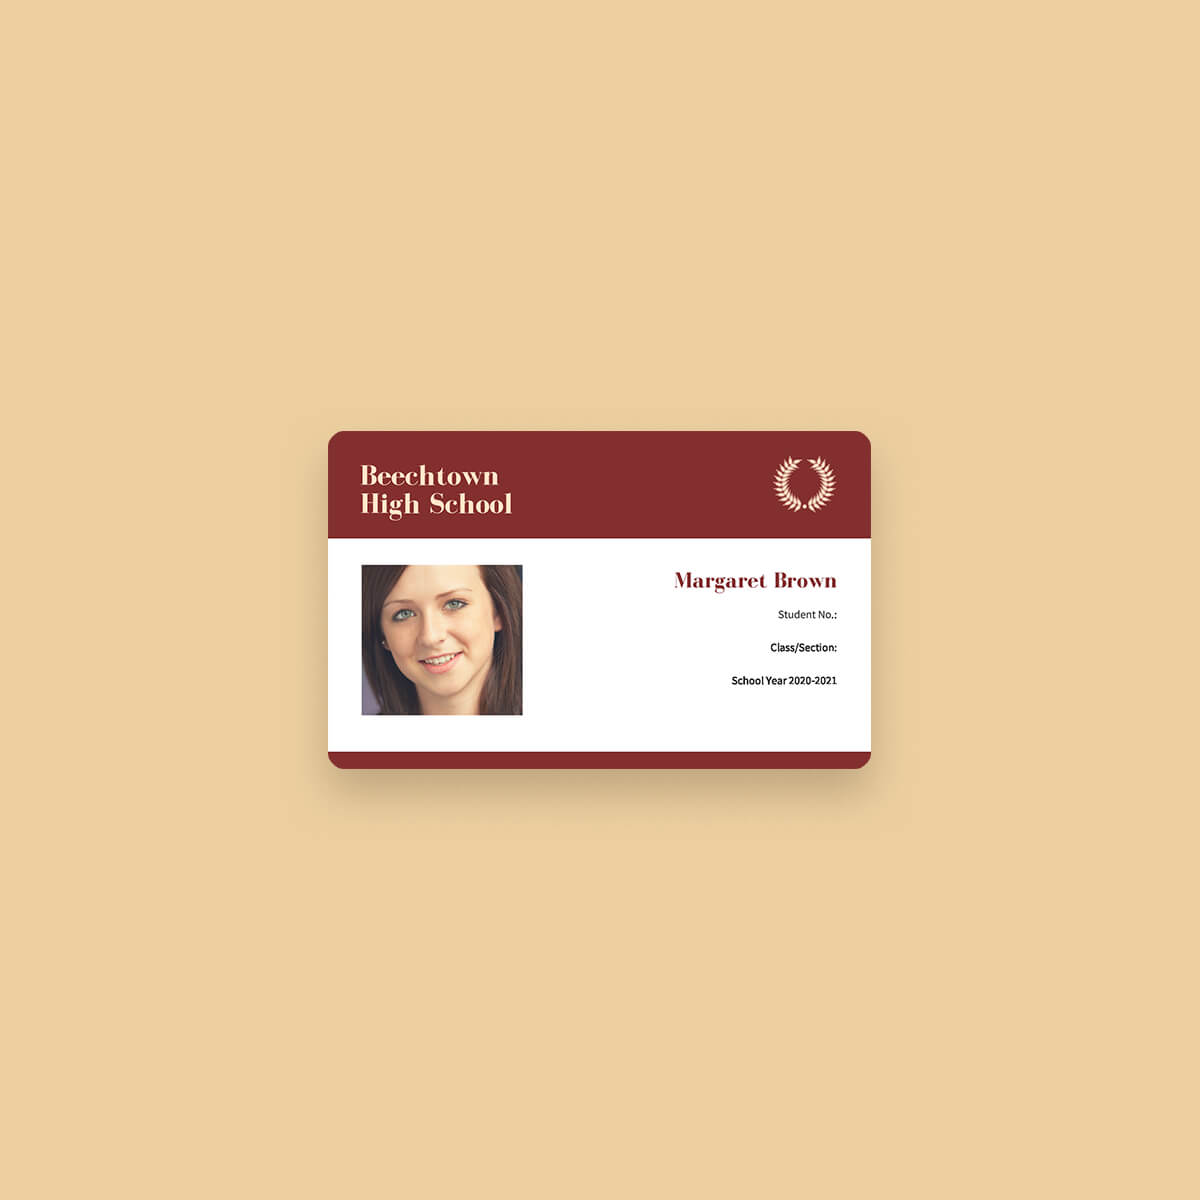 Free Online Id Maker: Design A Custom Id In Canva In High School Id Card Template